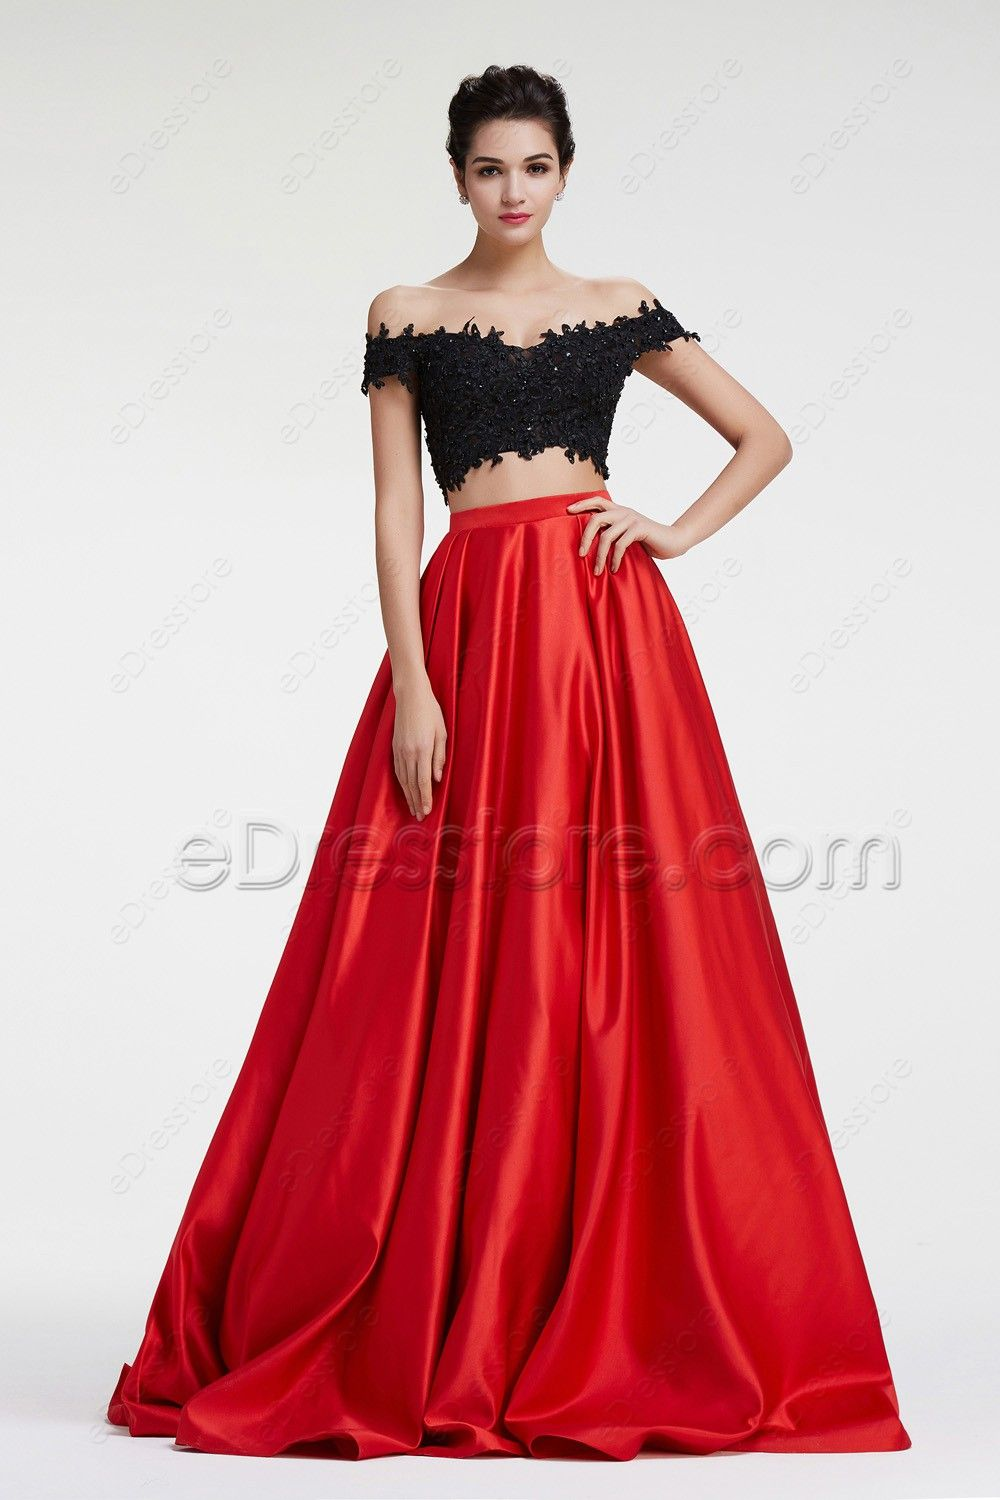 Off the Shoulder Black Red Two Piece Prom Dress Long | Fashion ...